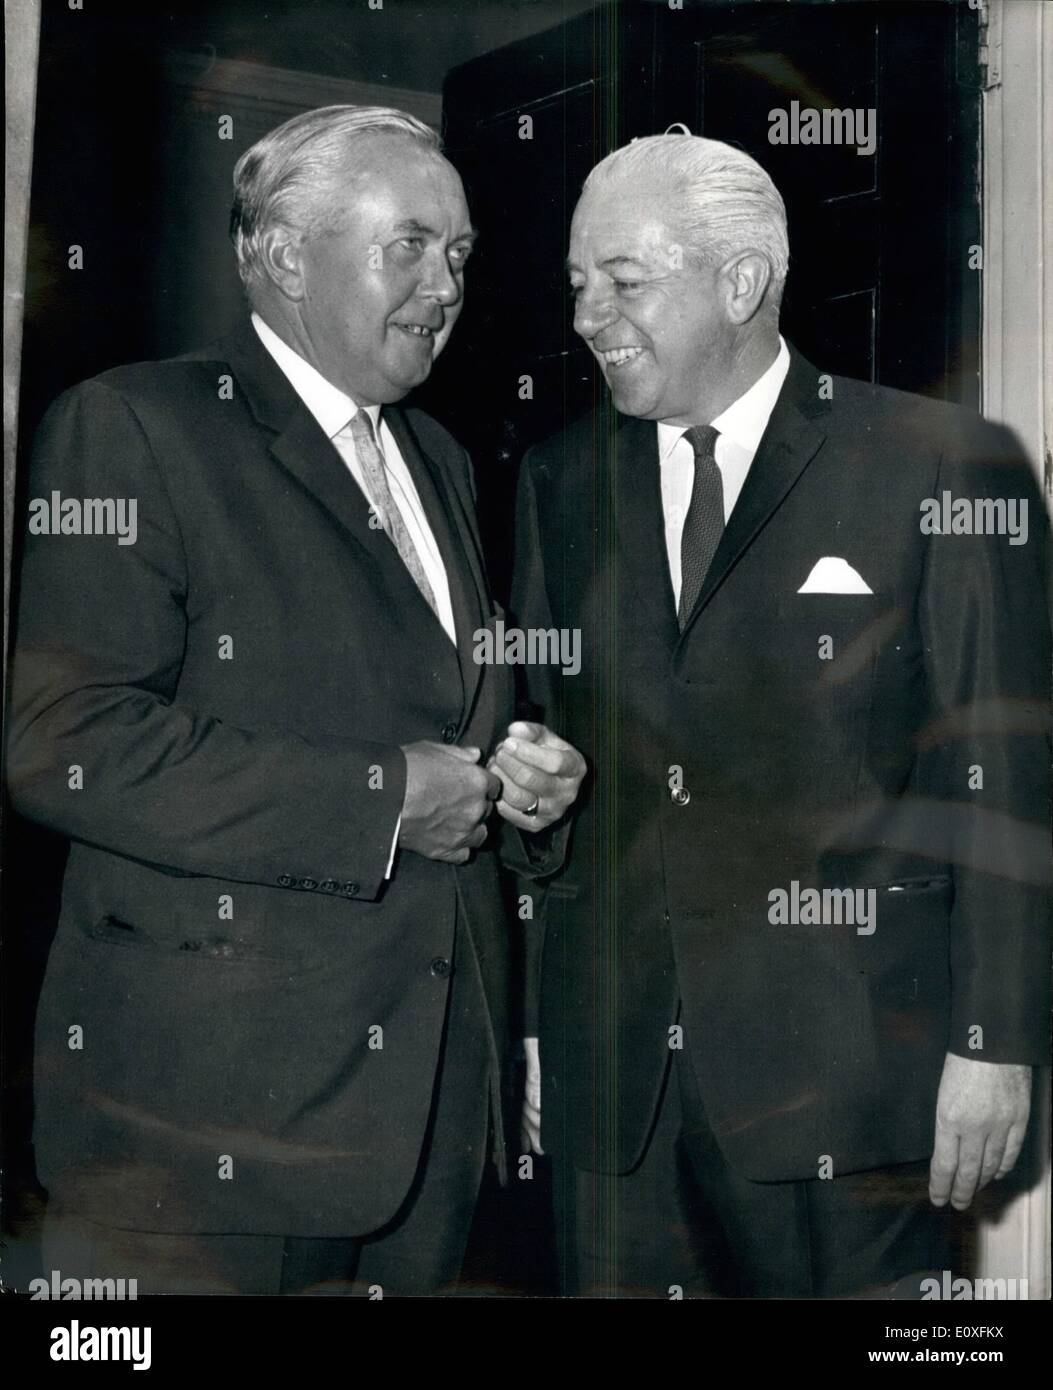 Sep. 09, 1966 - Australia's Prime Minister calls on Mr. Wilson at No. 10. : Mr Harold Holt, the Prime Minister of Australia, called on Mr. Wilson at No.10. Downing Street this morning, before the British Prime Minister left for Blackpool to speak at the Trades Union Congress. Photo shows Mr. Wilson says goodbye to Mr. Harold Holt (right) after their talks this morning. - Stock Image